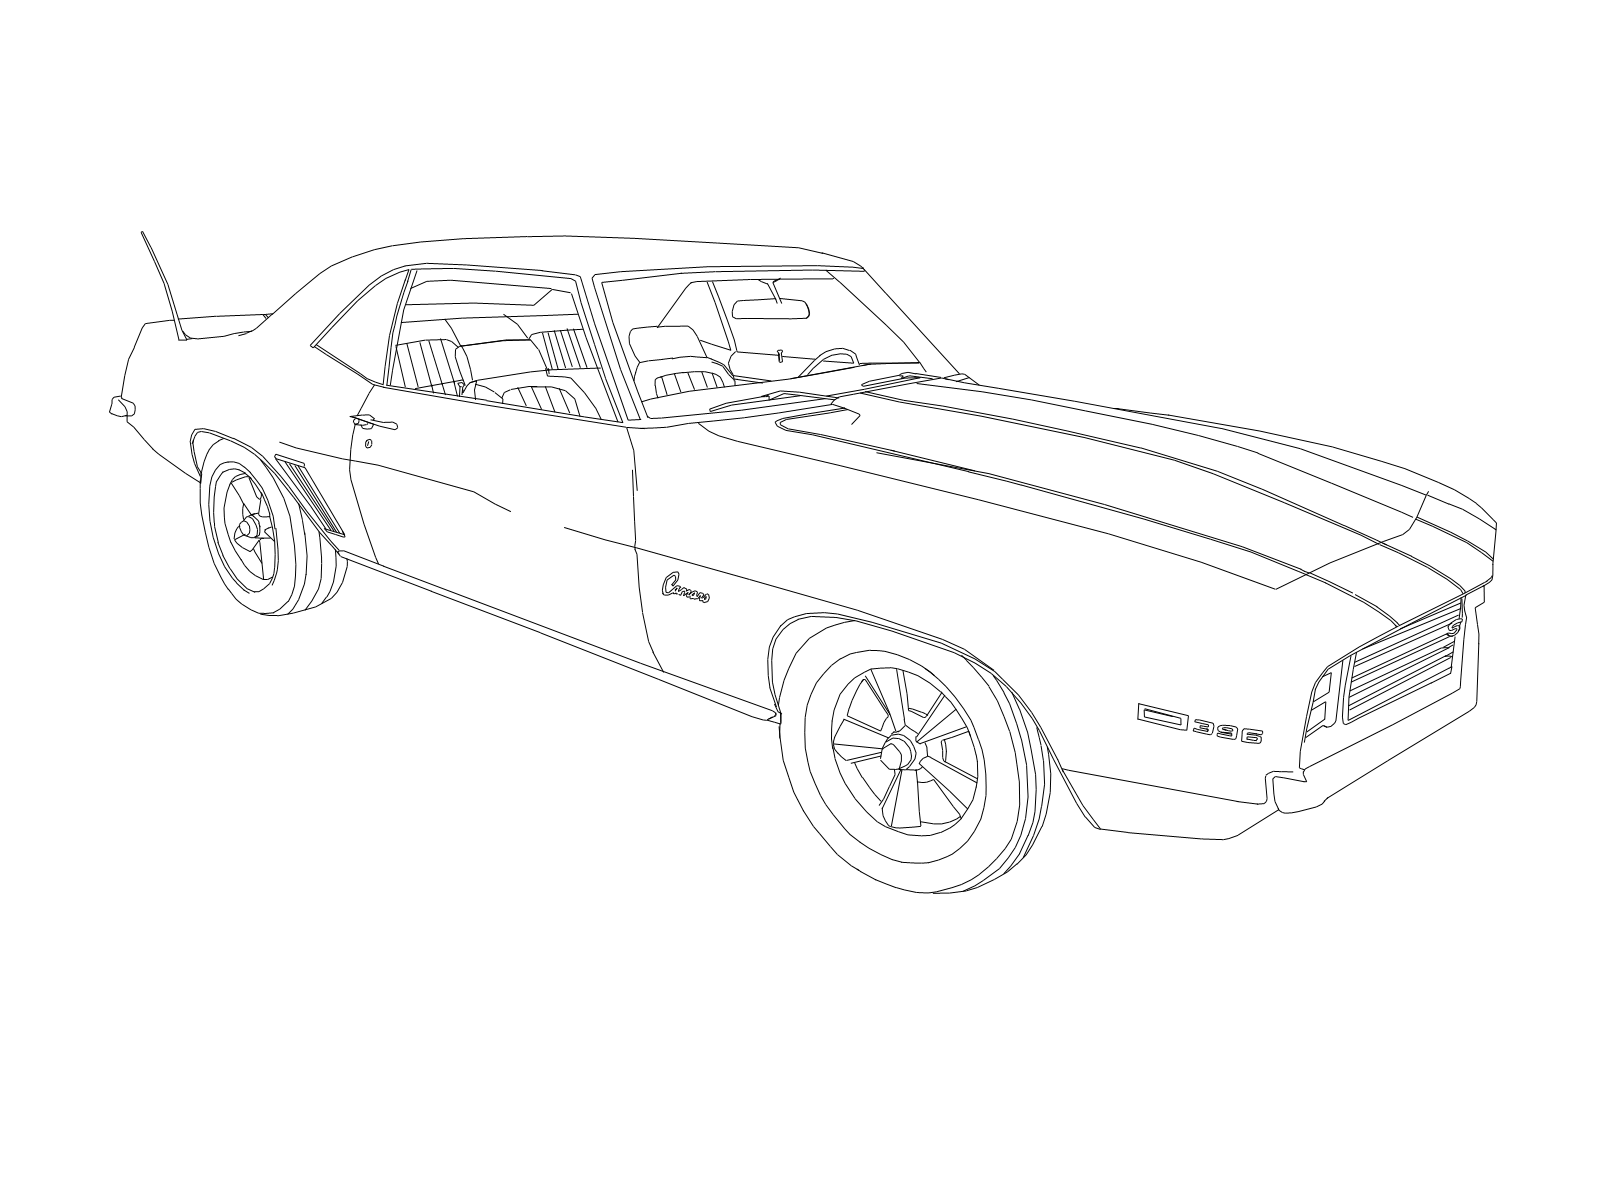 1967 chevy impala supernatural drawing pictures to pin on